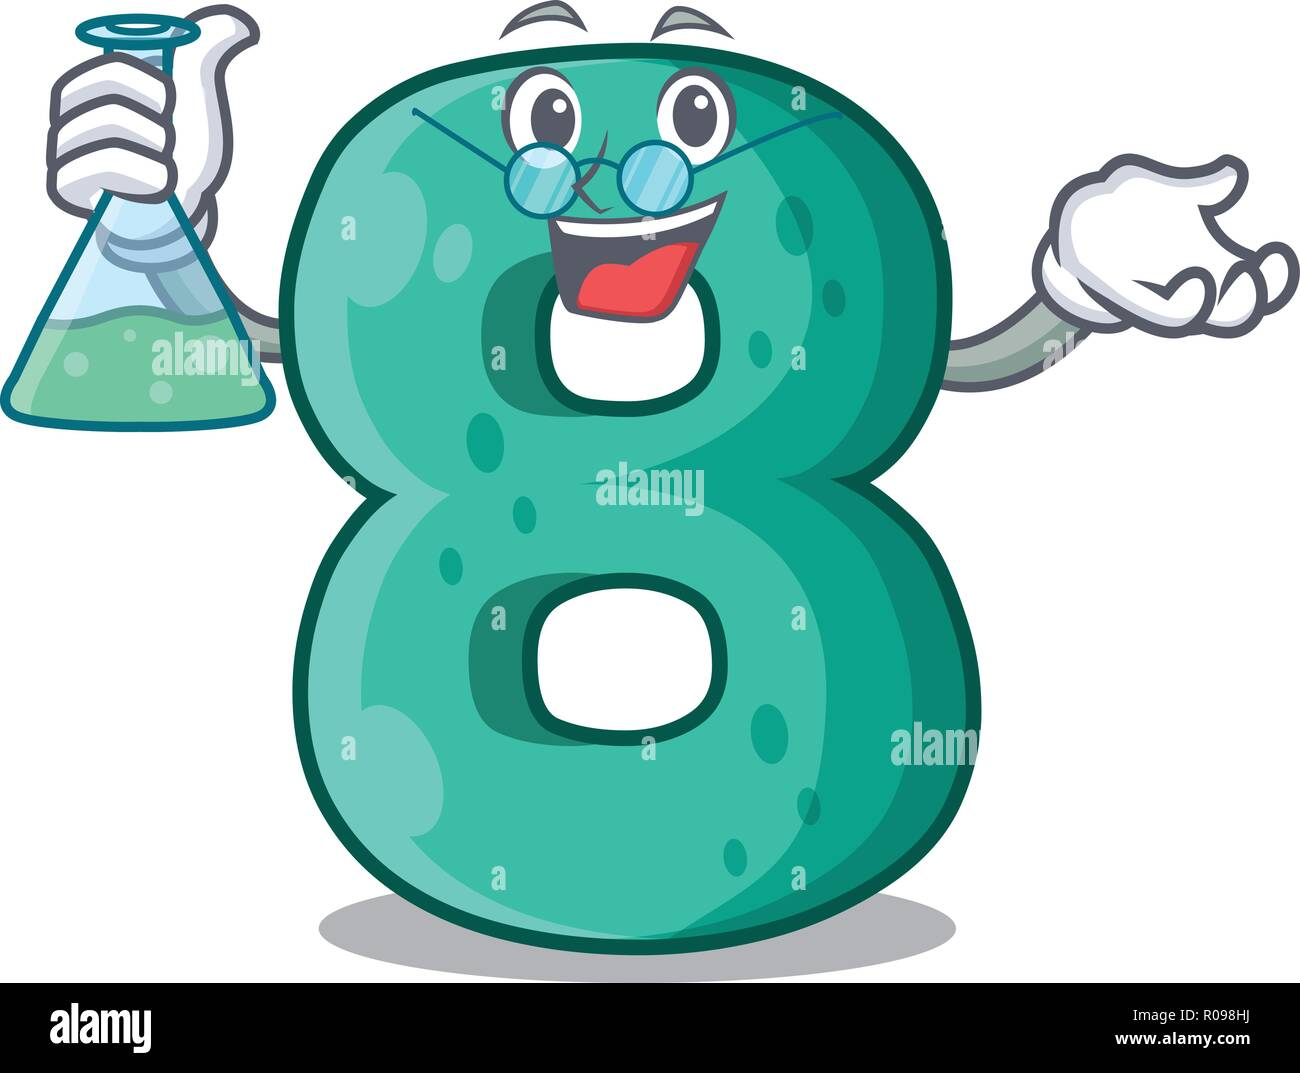 Professor number house eight the shaped character - Stock Vector